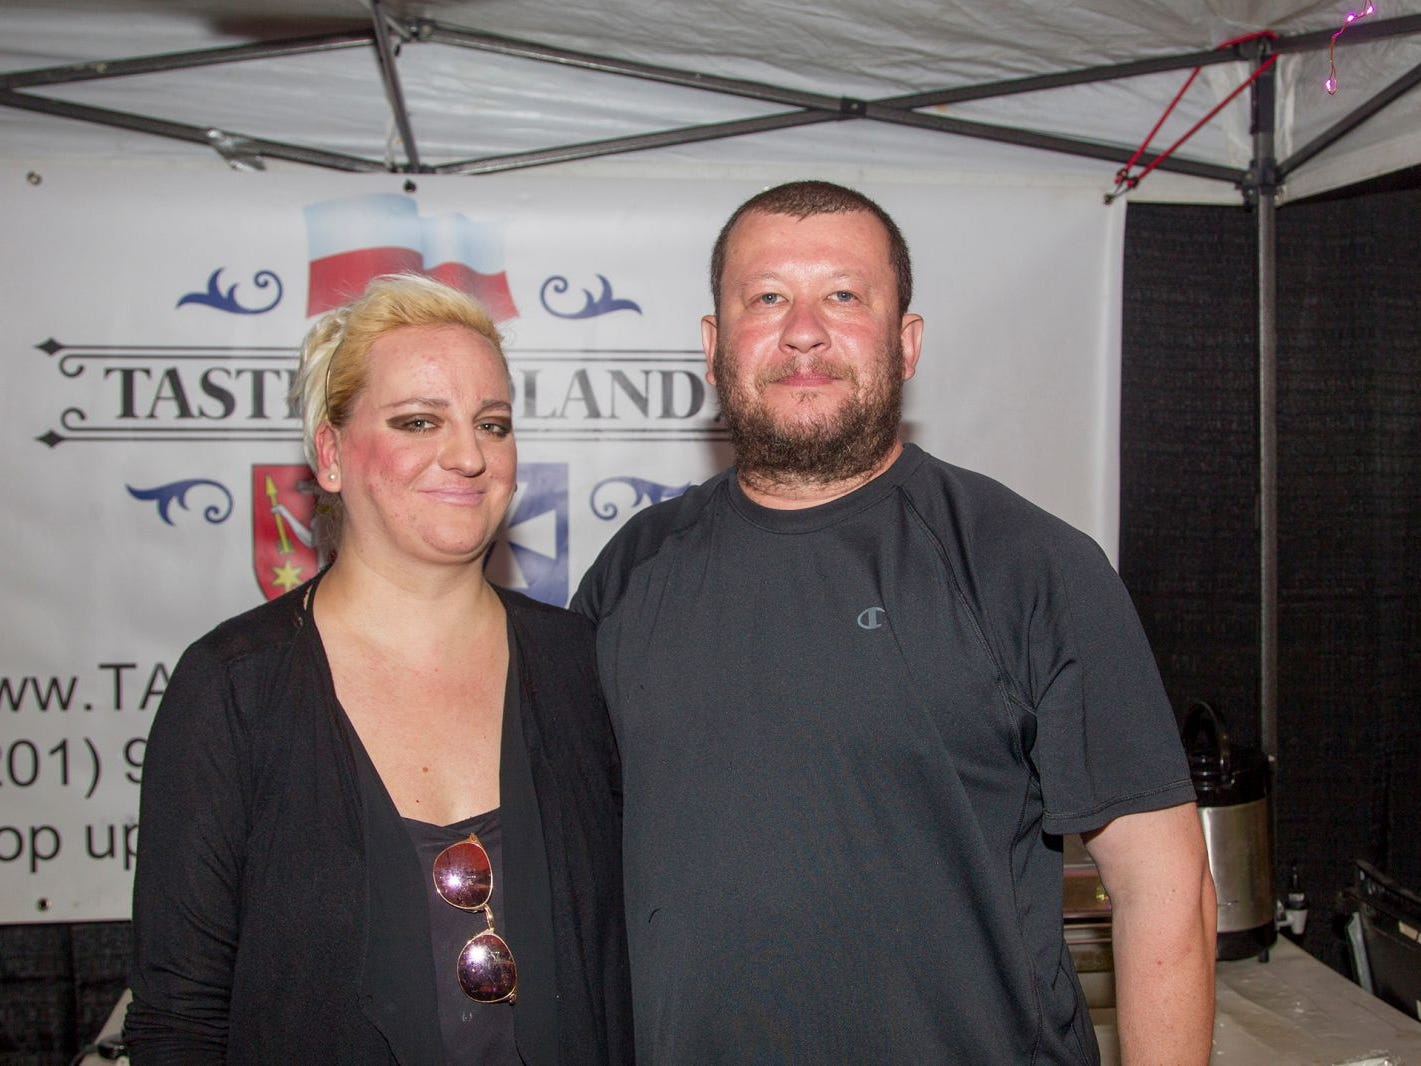 Taste of Poland - Alexandria and Milosz. Jersey City Craft Distillery Fest at the Harborside Atrium featured more than 100 styles of spirits. Guests had the chance to taste craft-distilled spirits from moonshine, rum, cognac, whiskey, vodka, gin, tequila and more. 09/08/2018